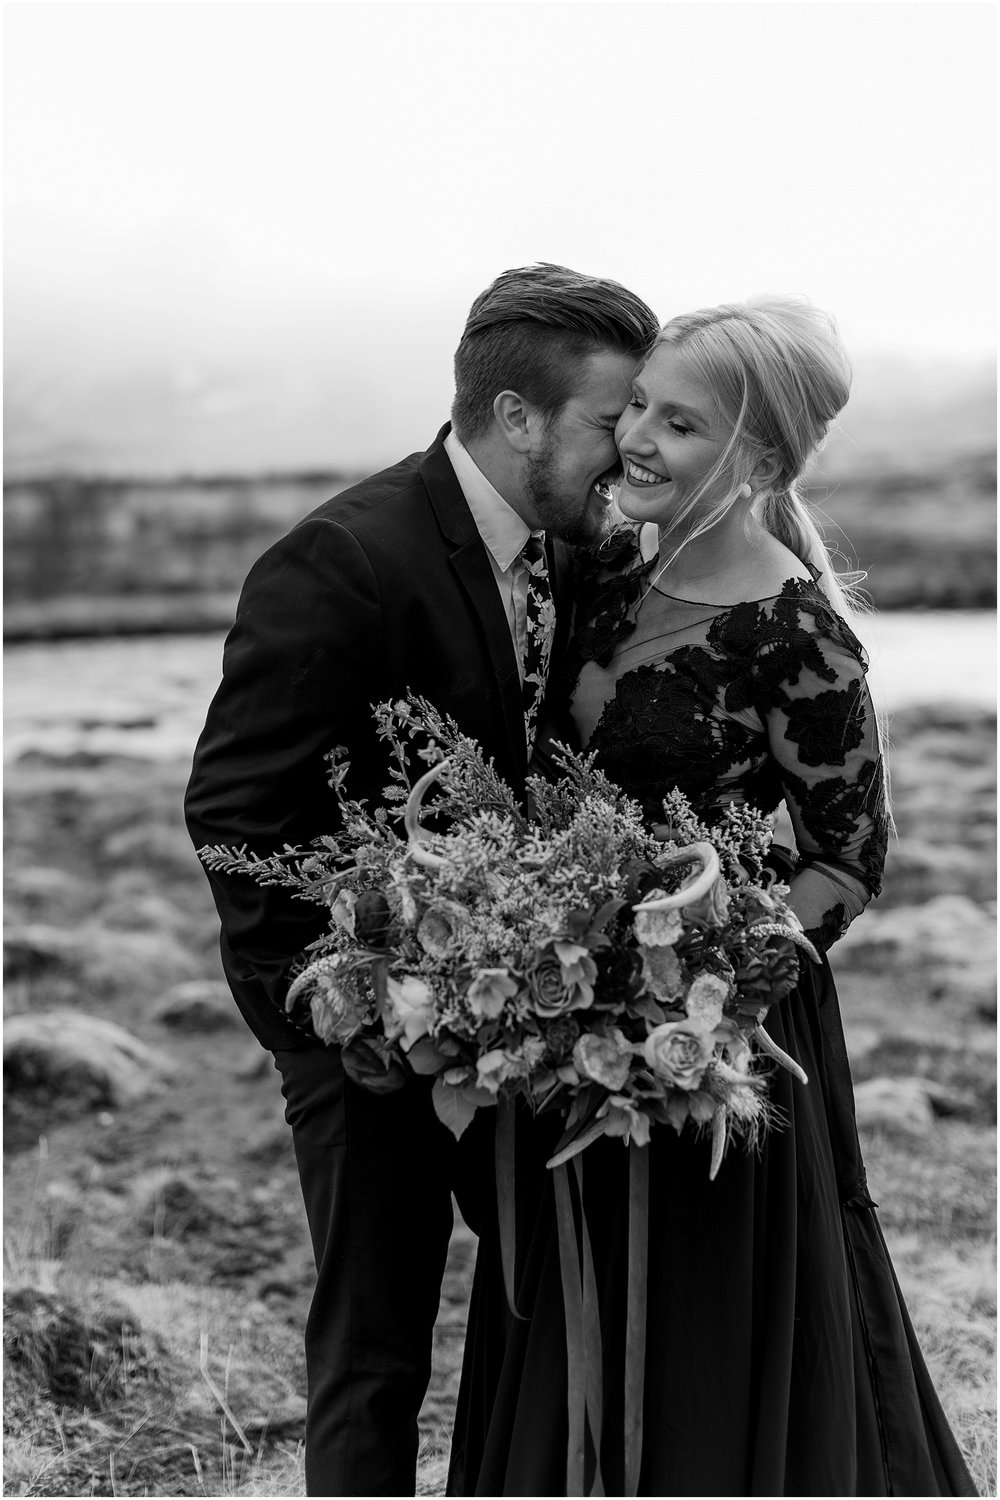 Hannah Leigh Photography Black Wedding Dress Iceland Elopement_2428.jpg